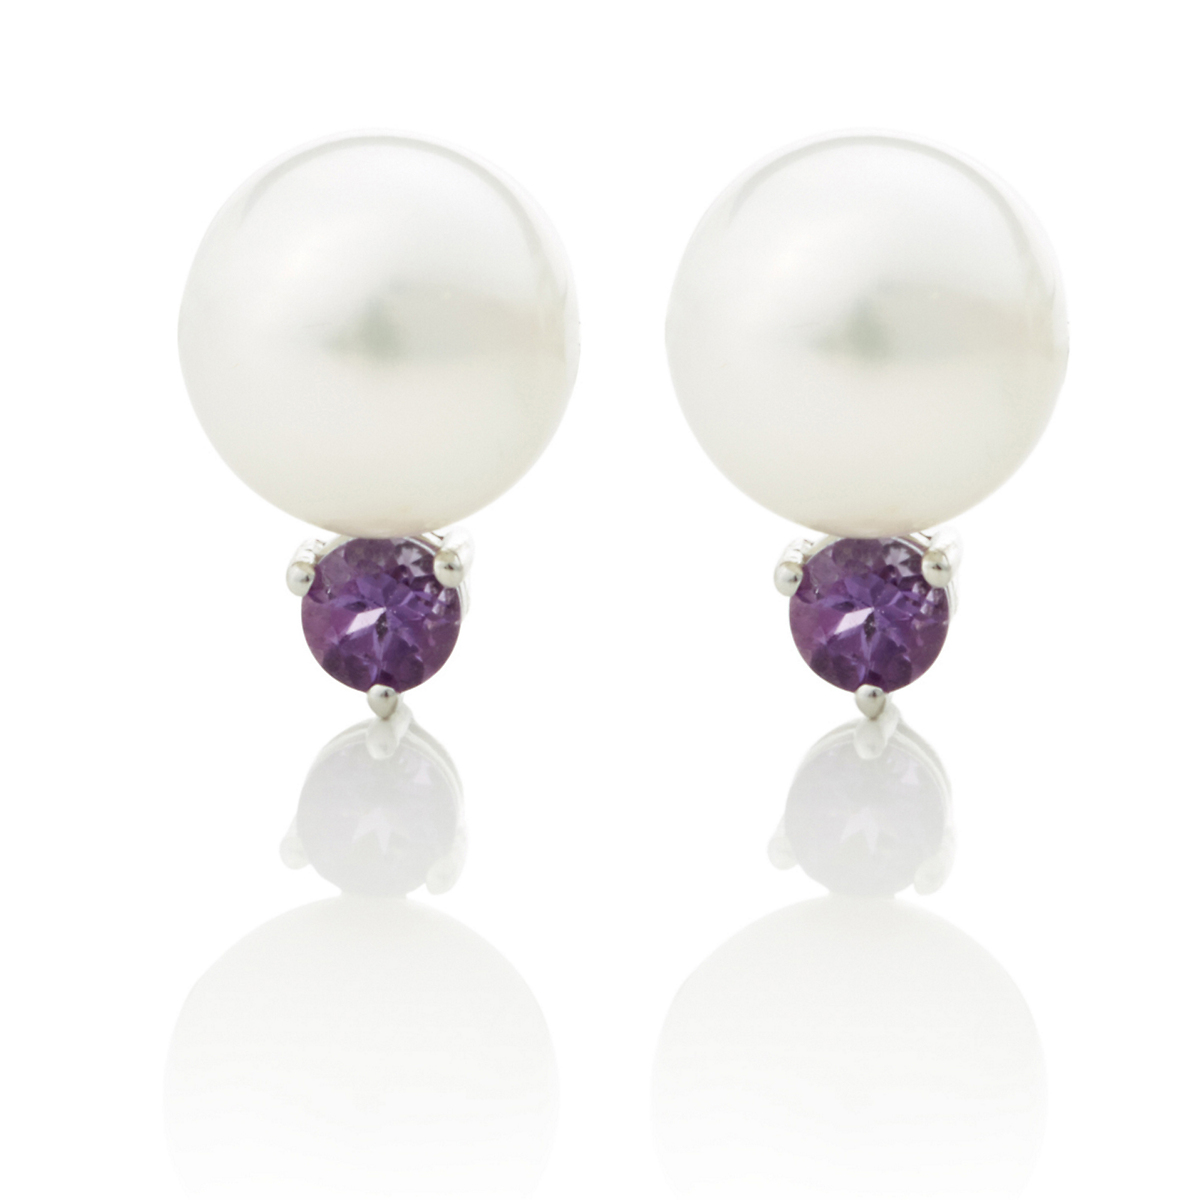 Gump's White Freshwater Pearl, Amethyst & Silver Earrings